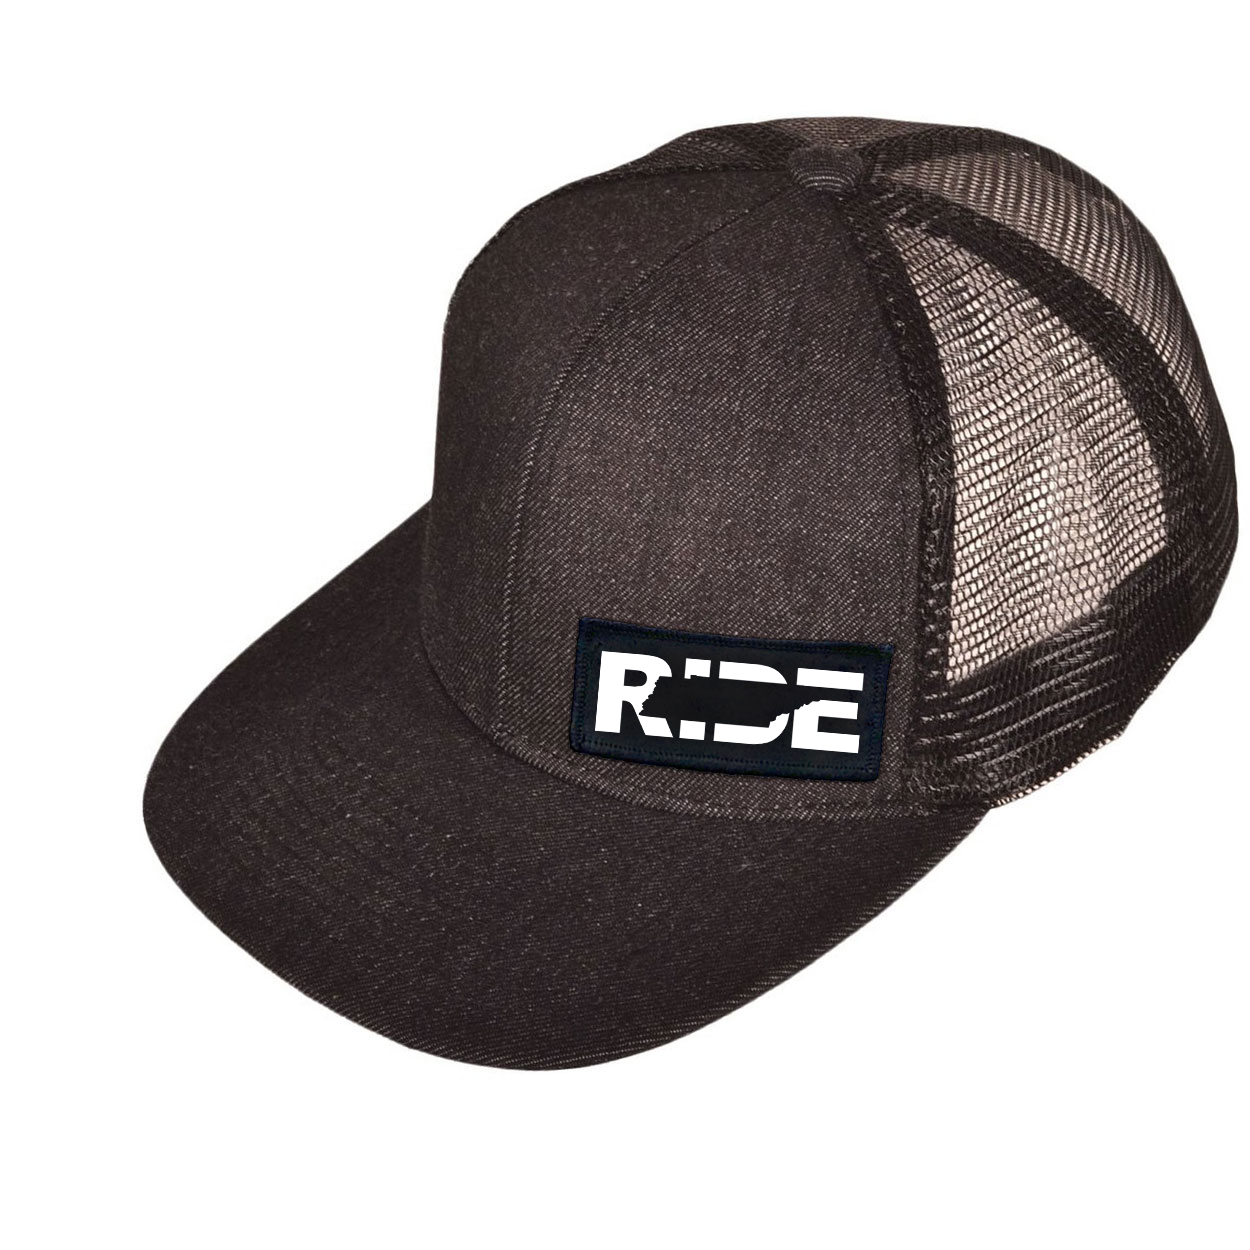 Ride Tennessee Night Out Woven Patch Snapback Flat Brim Hat Black Denim (White Logo)